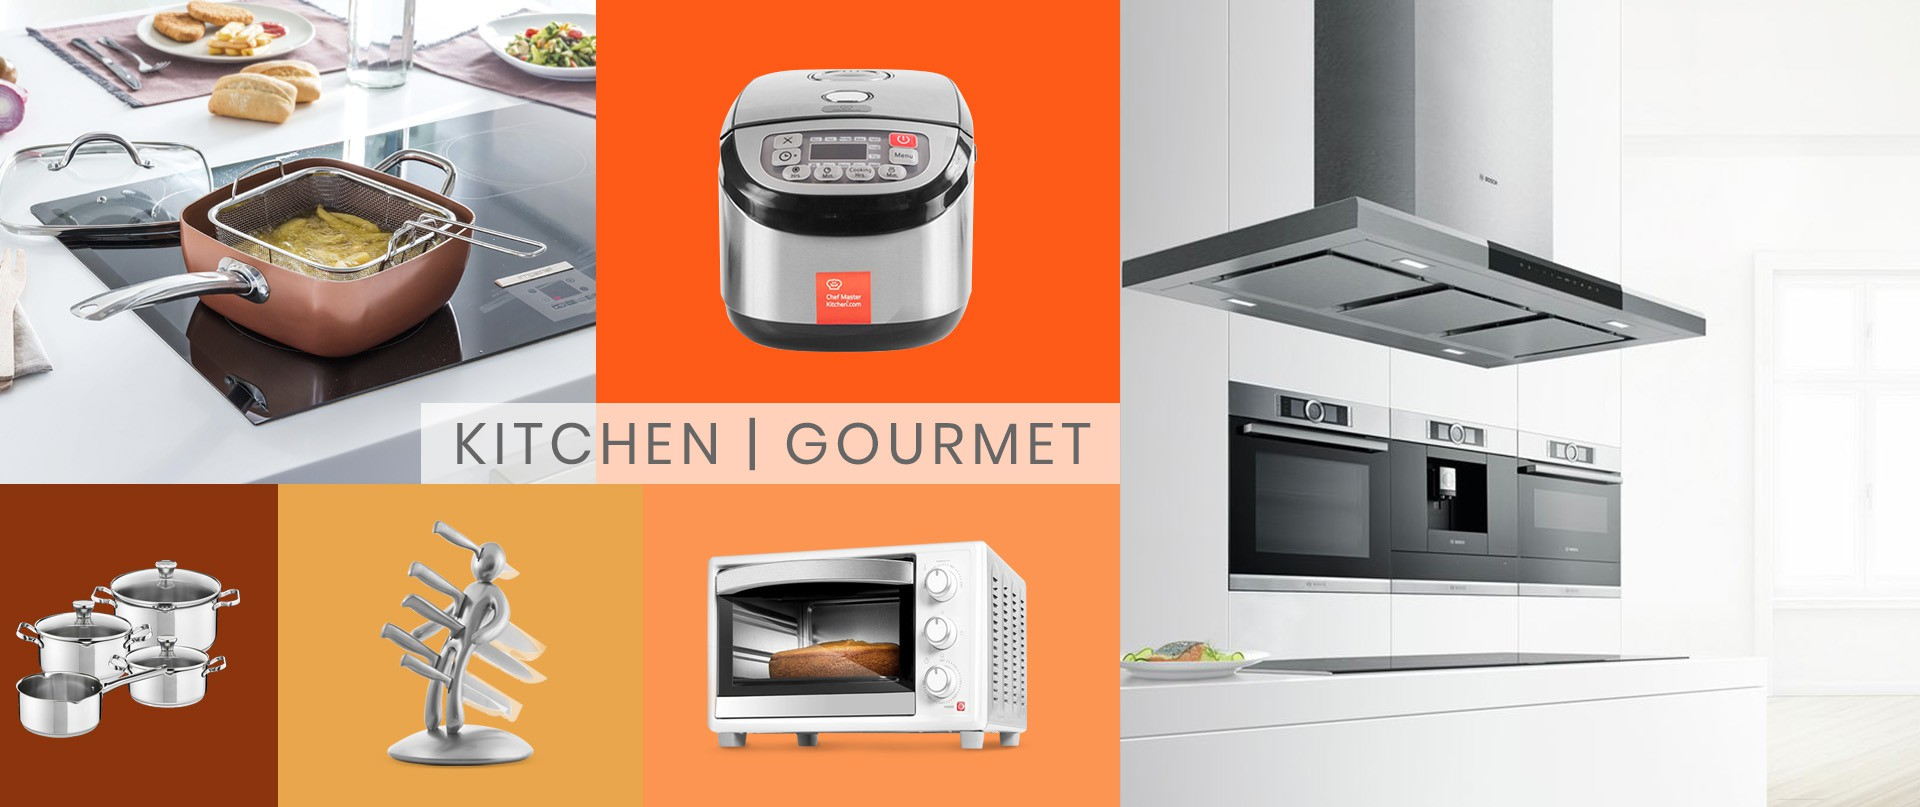 Kitchen | Gourmet